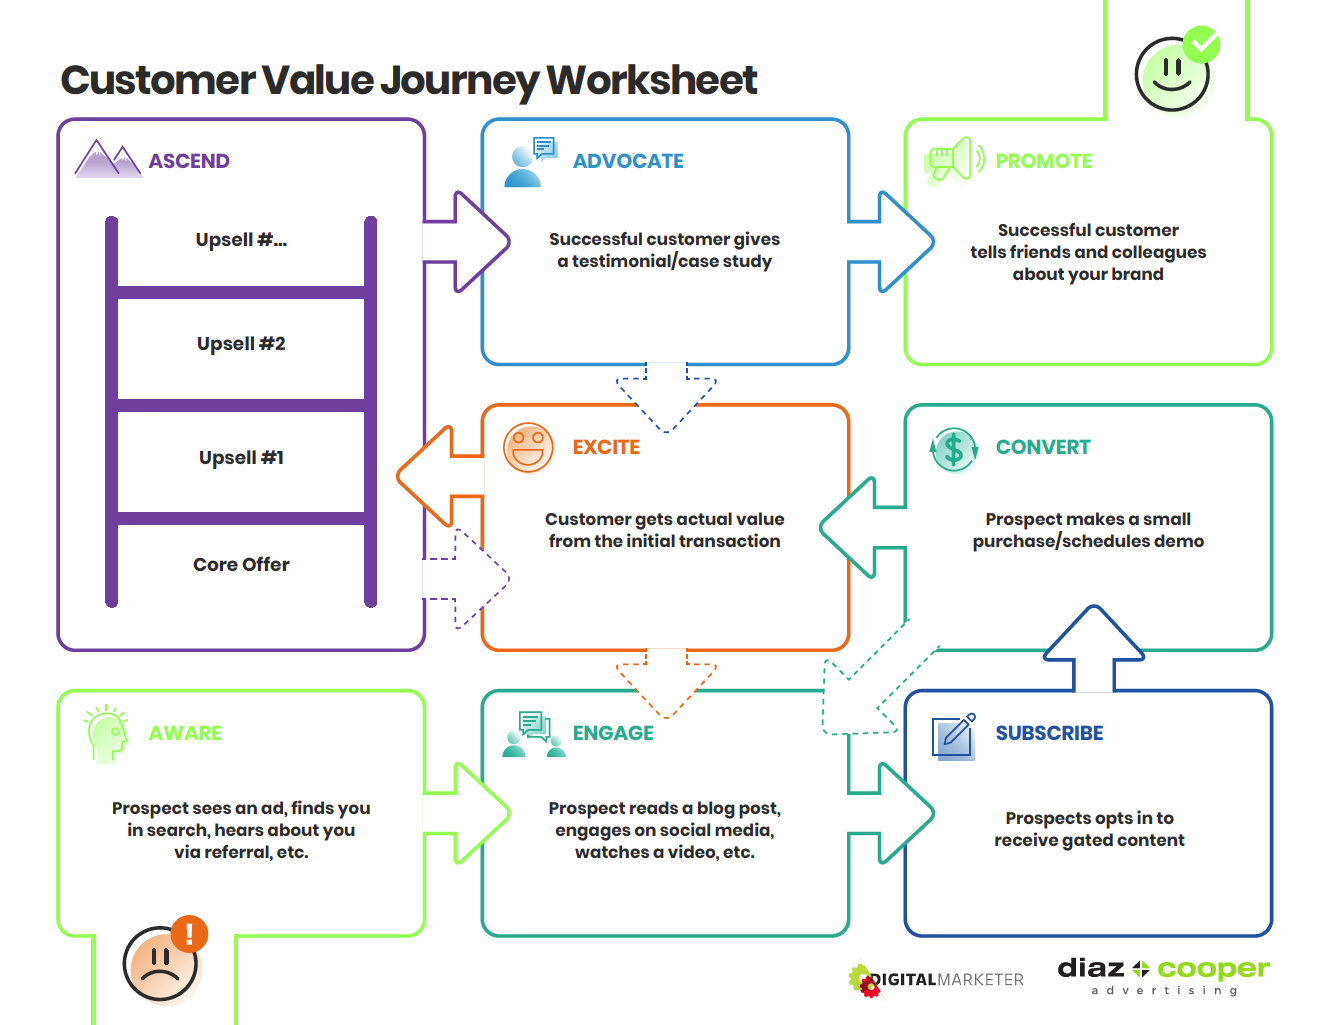 customer-value-journey-roadmap-sample-diaz-cooper